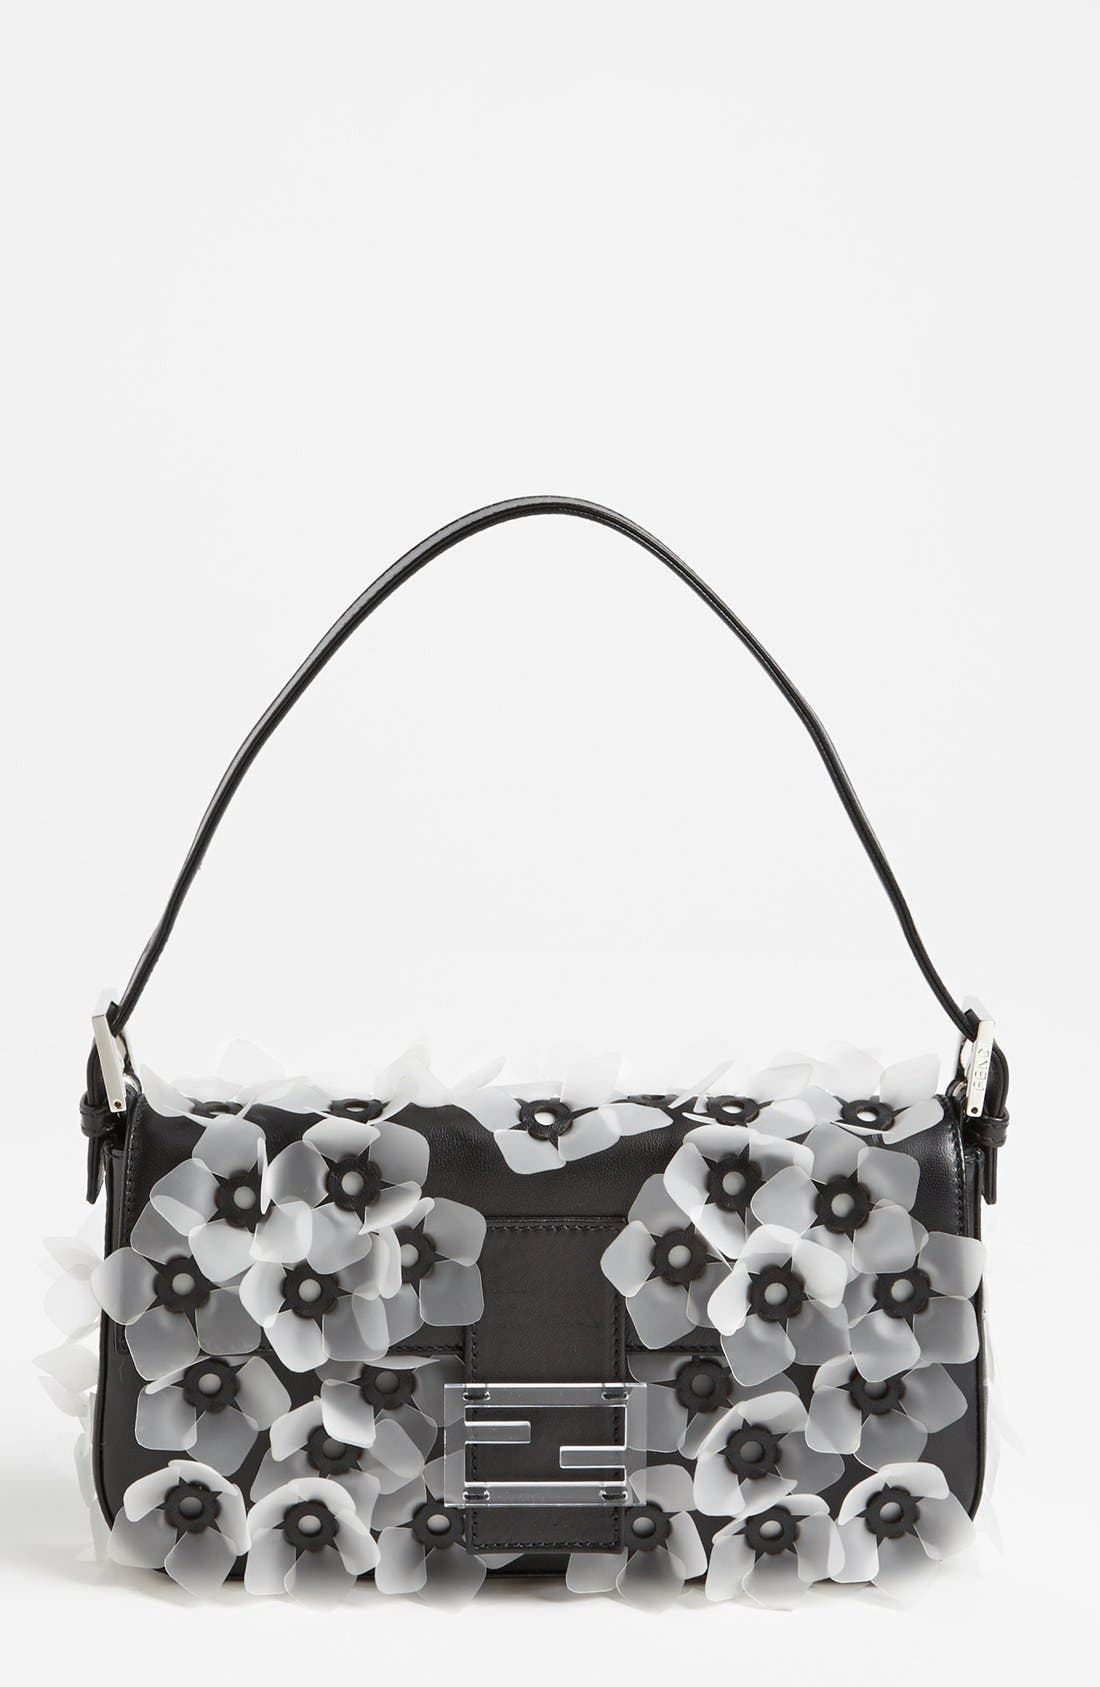 Alternate Image 1 Selected - Fendi 'Flower' Leather Baguette